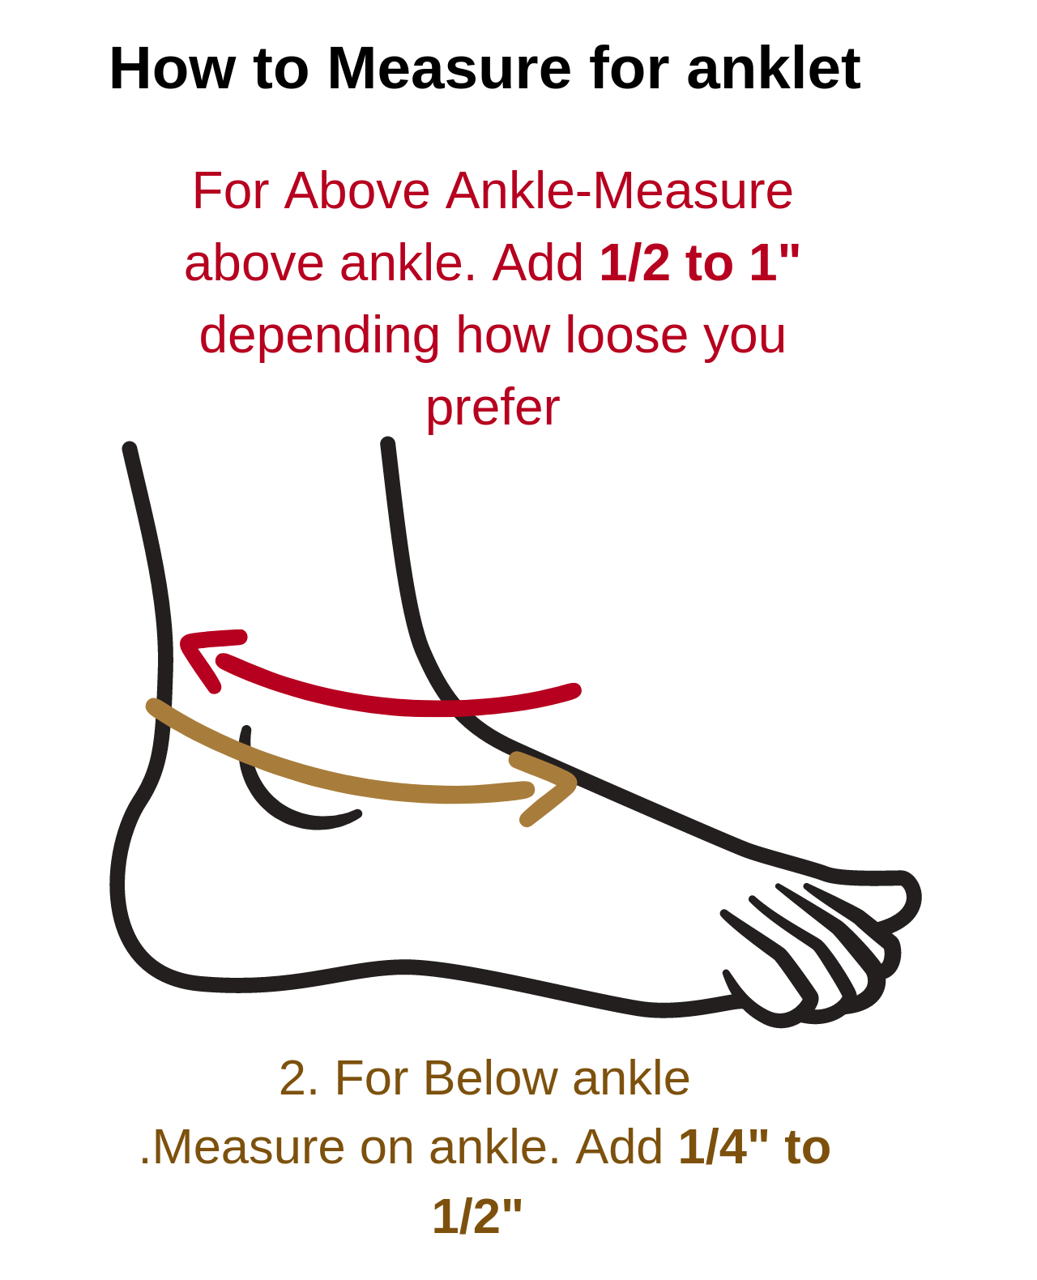 anklet measuring guide graphic